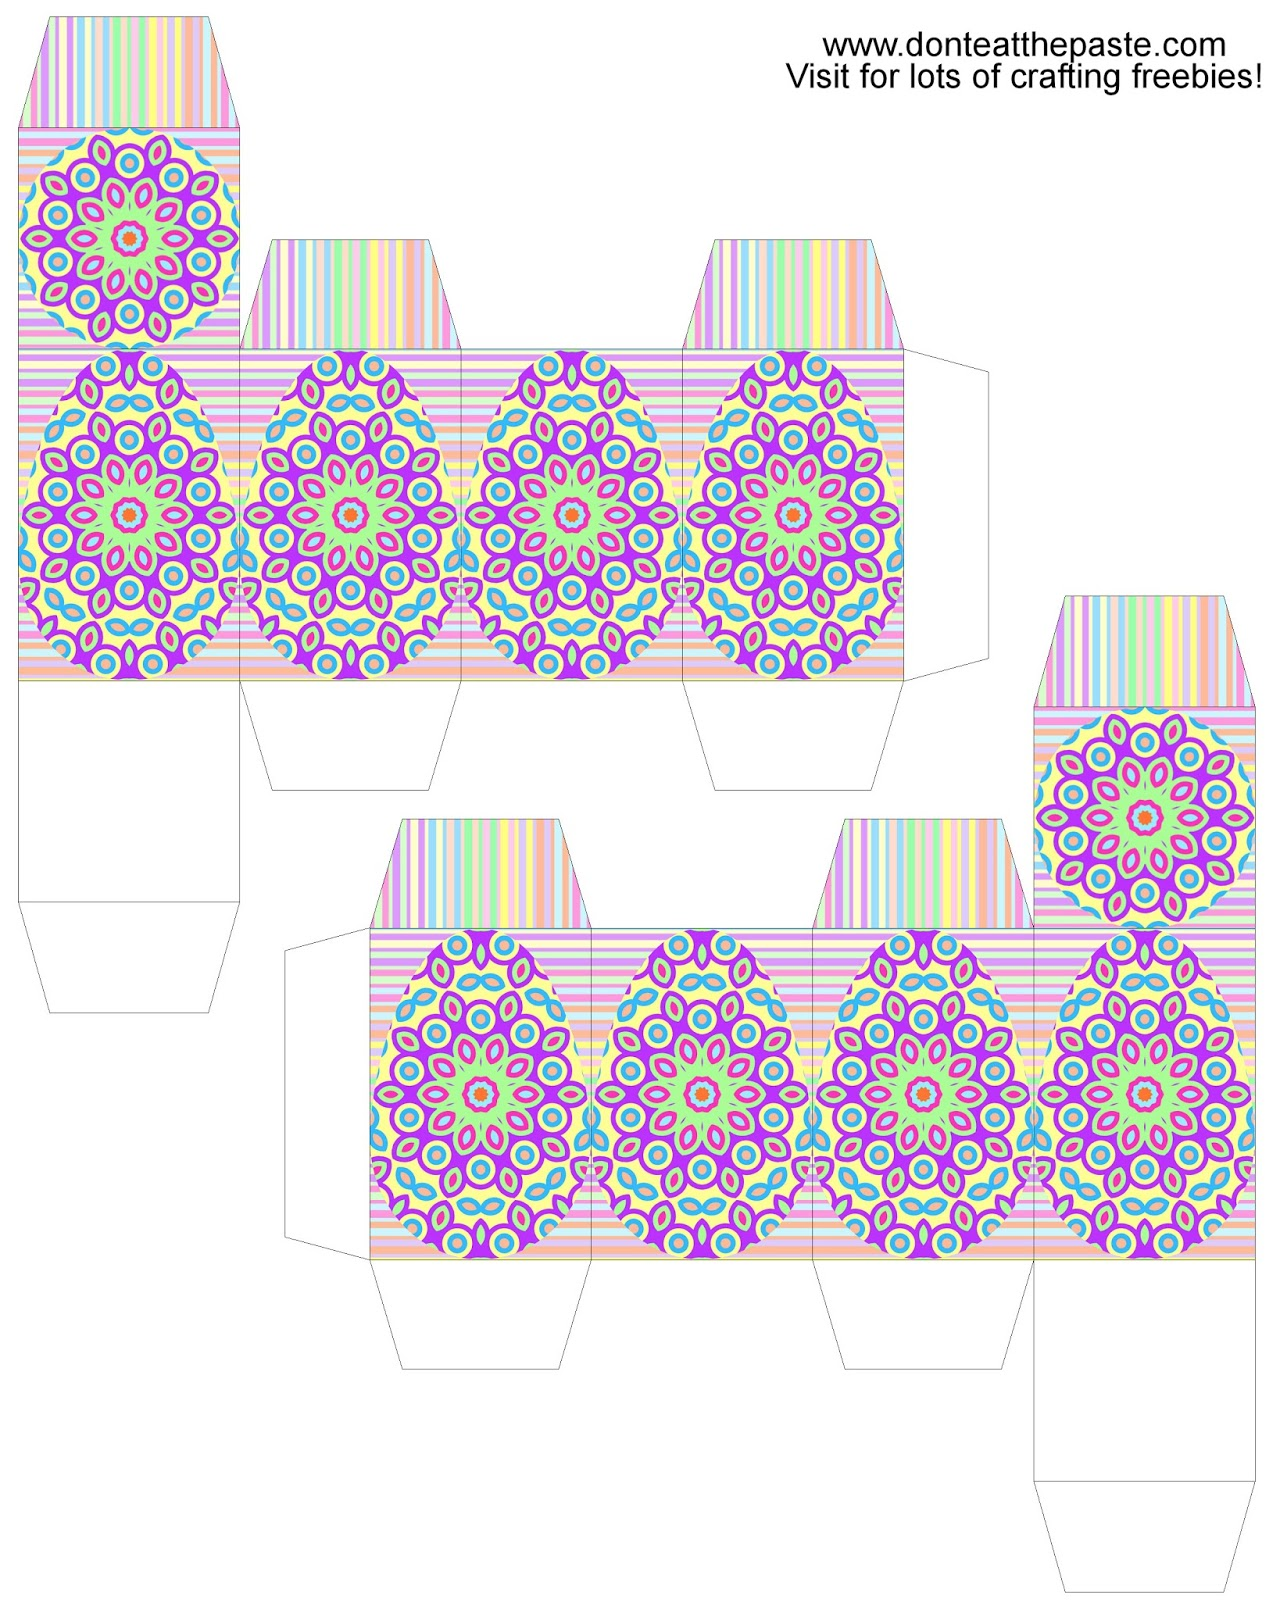 Printable creme egg box in bright pastels- boxes